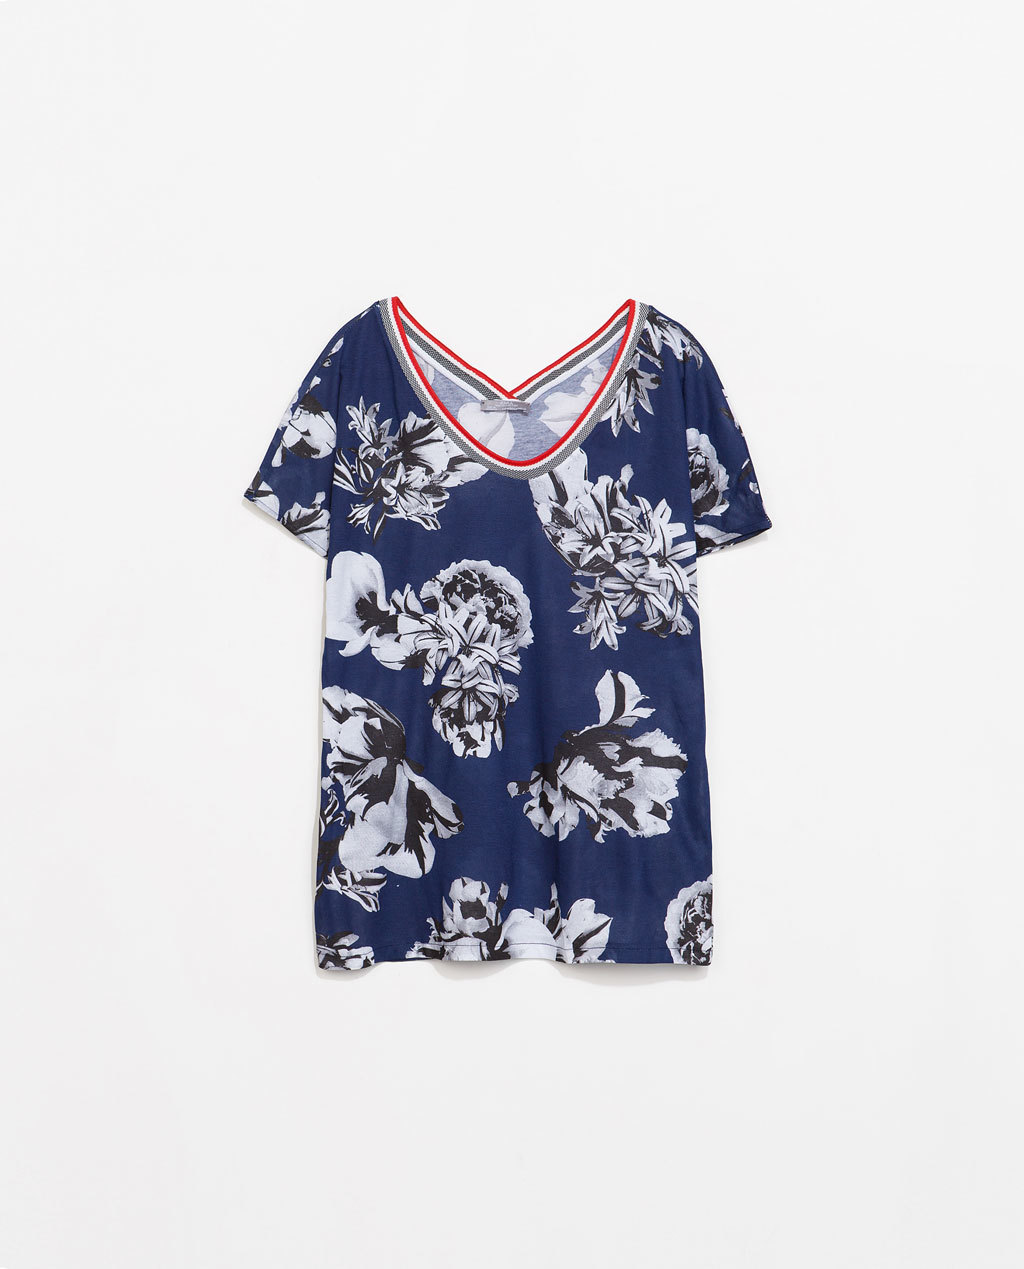 Printed T Shirt - style: t-shirt; secondary colour: white; predominant colour: navy; occasions: casual, creative work; length: standard; neckline: scoop; fibres: cotton - 100%; fit: loose; sleeve length: short sleeve; sleeve style: standard; pattern type: fabric; pattern: florals; texture group: jersey - stretchy/drapey; season: s/s 2014; pattern size: big & busy (top)